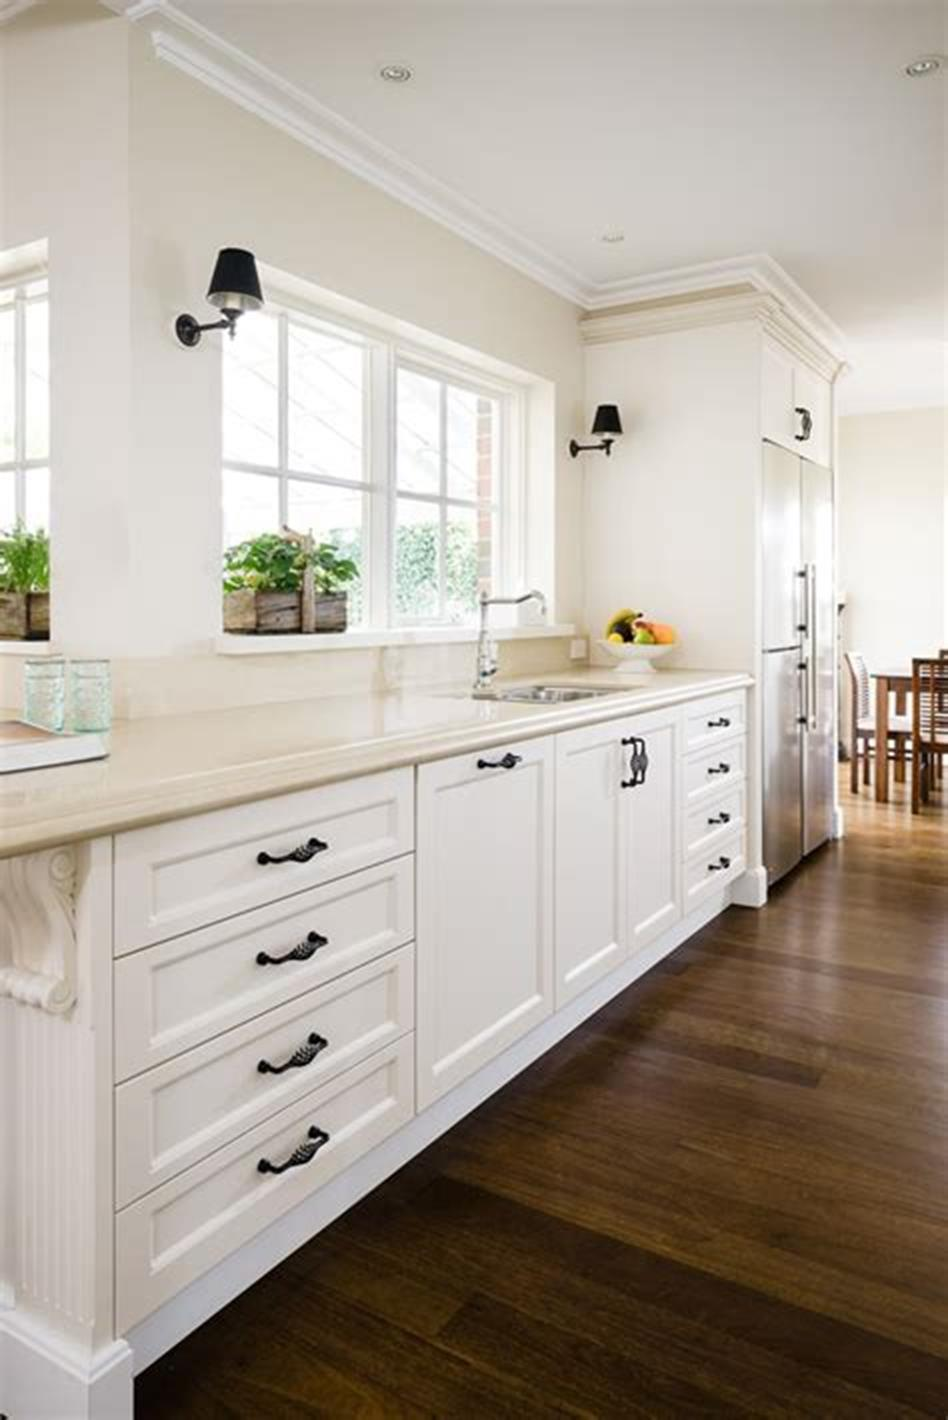 35 Stunning Contemporary Kitchen Design Ideas Youll Love 48